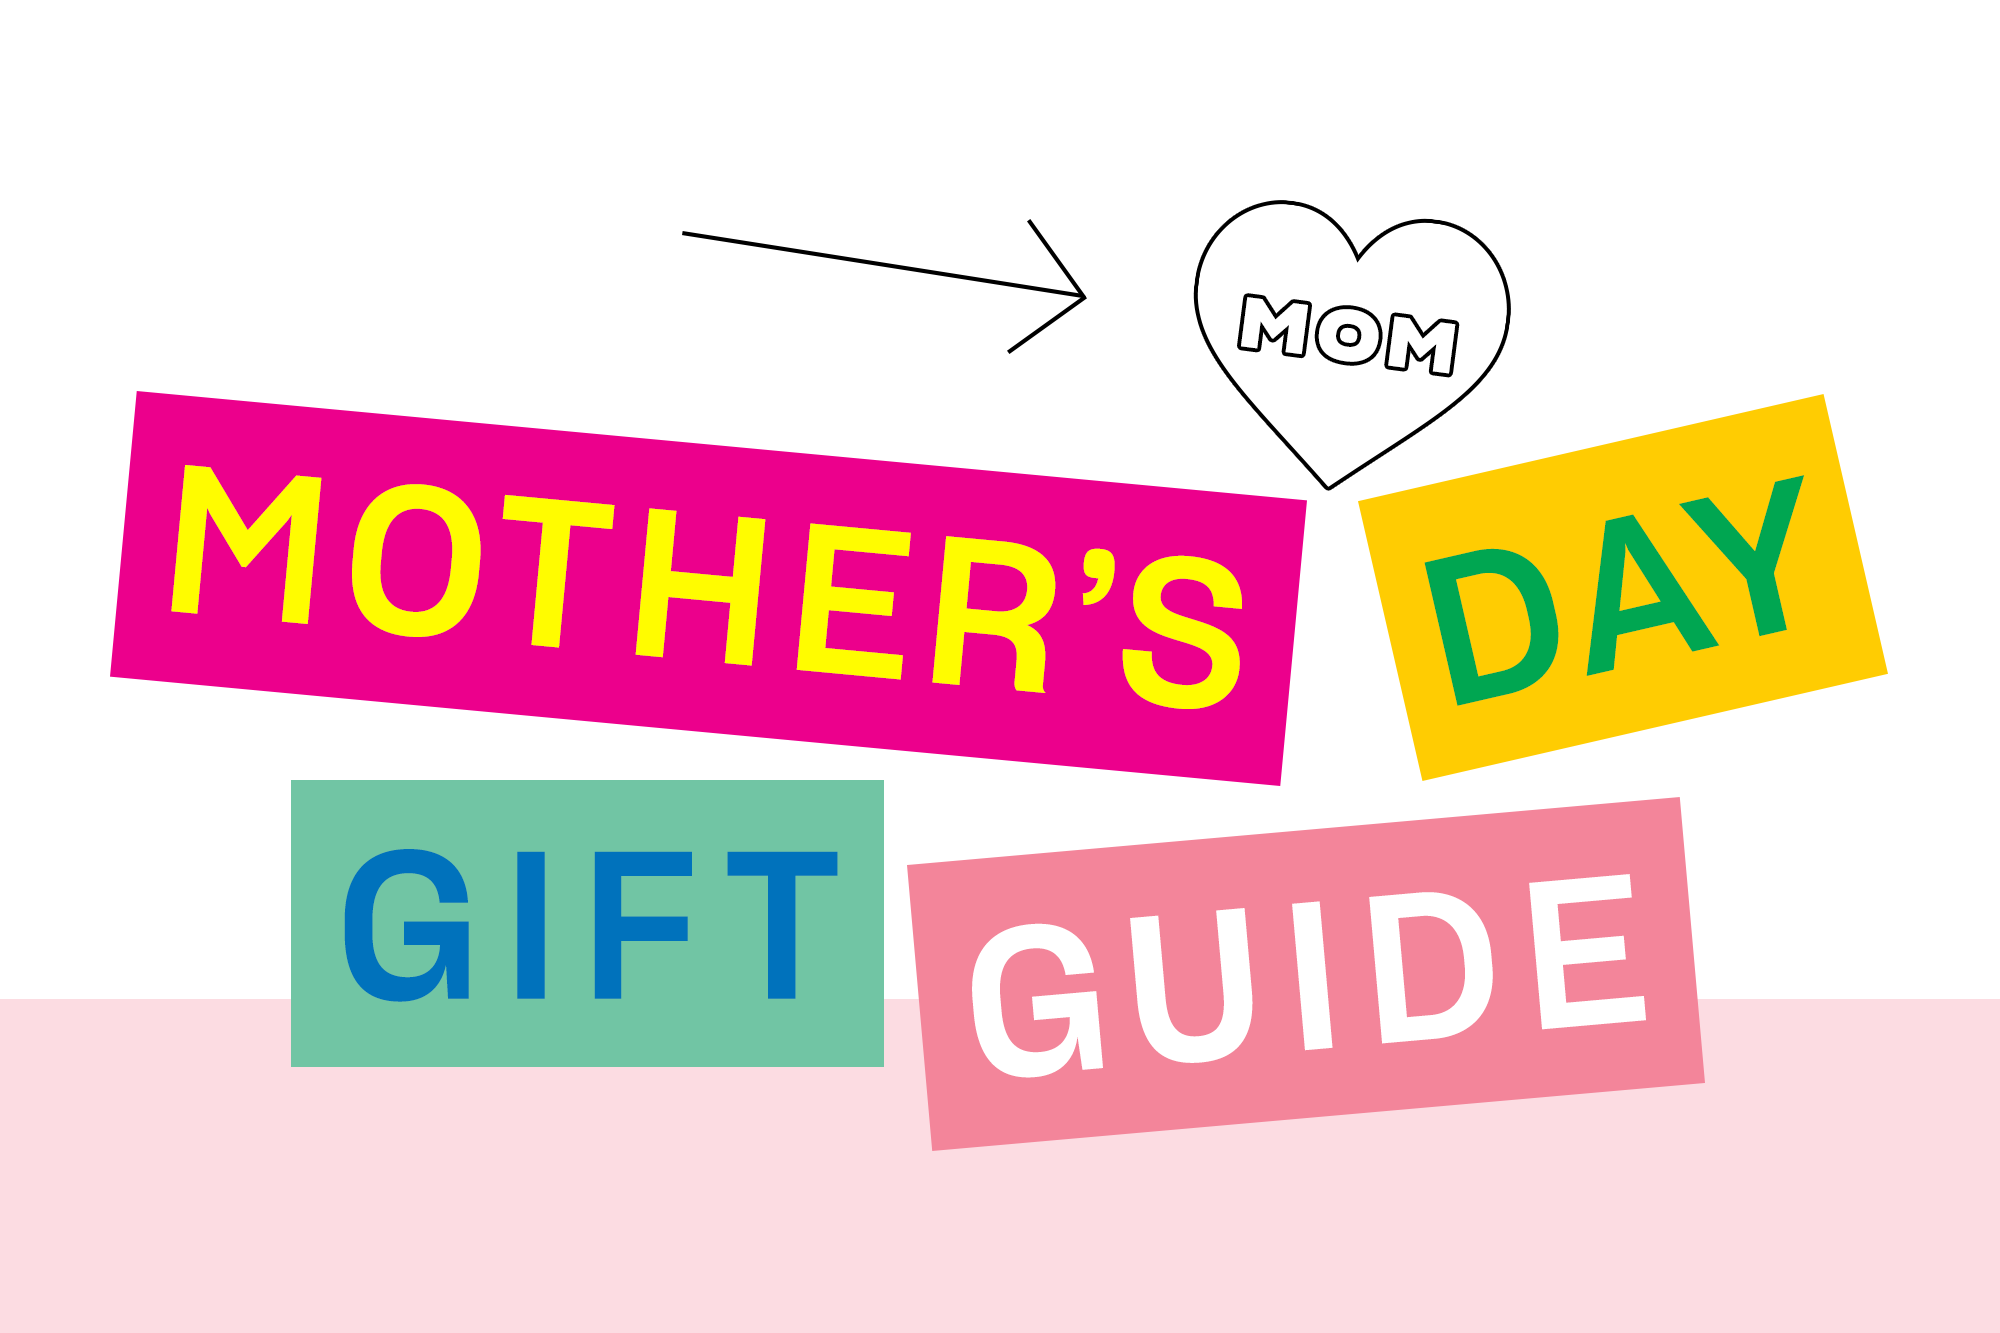 Mother's Day gift ideas for all the special women in your life